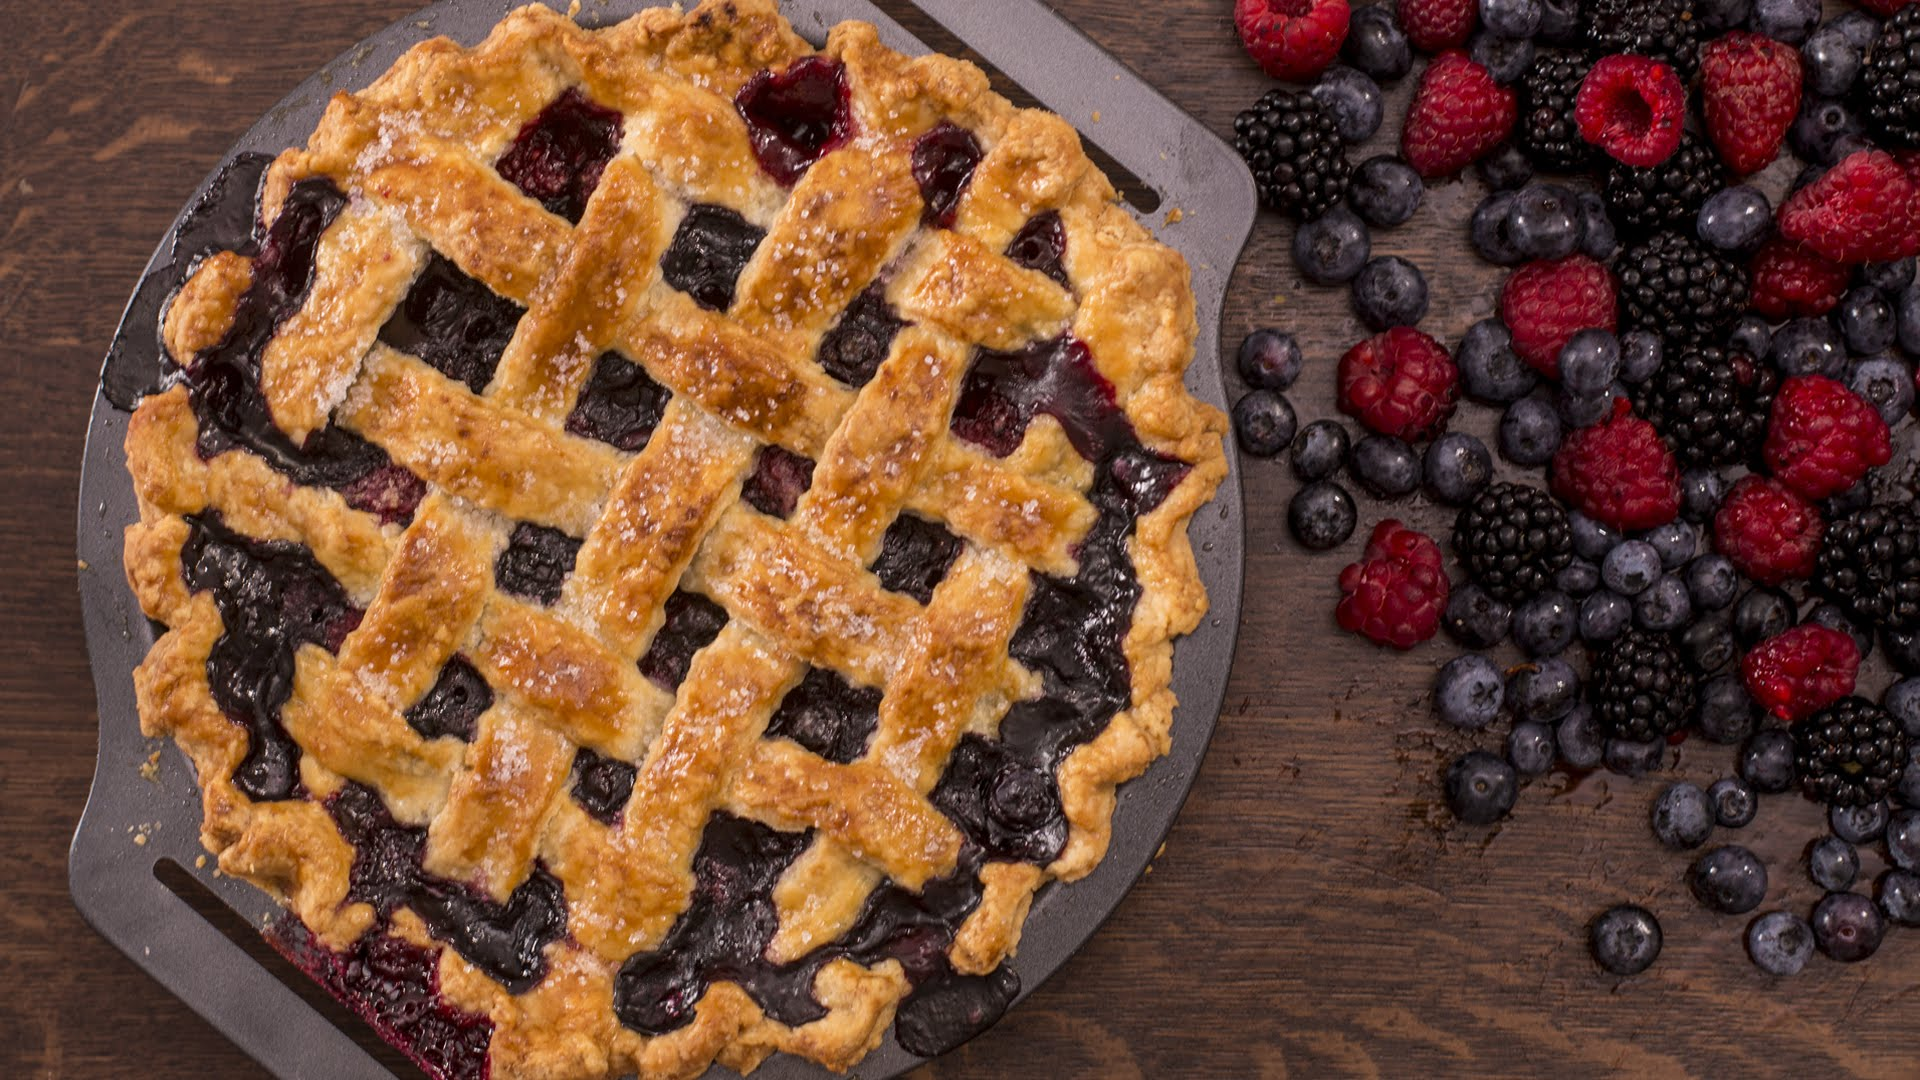 She Combines So Many Different Berries To Make This Incredible Berry Pie